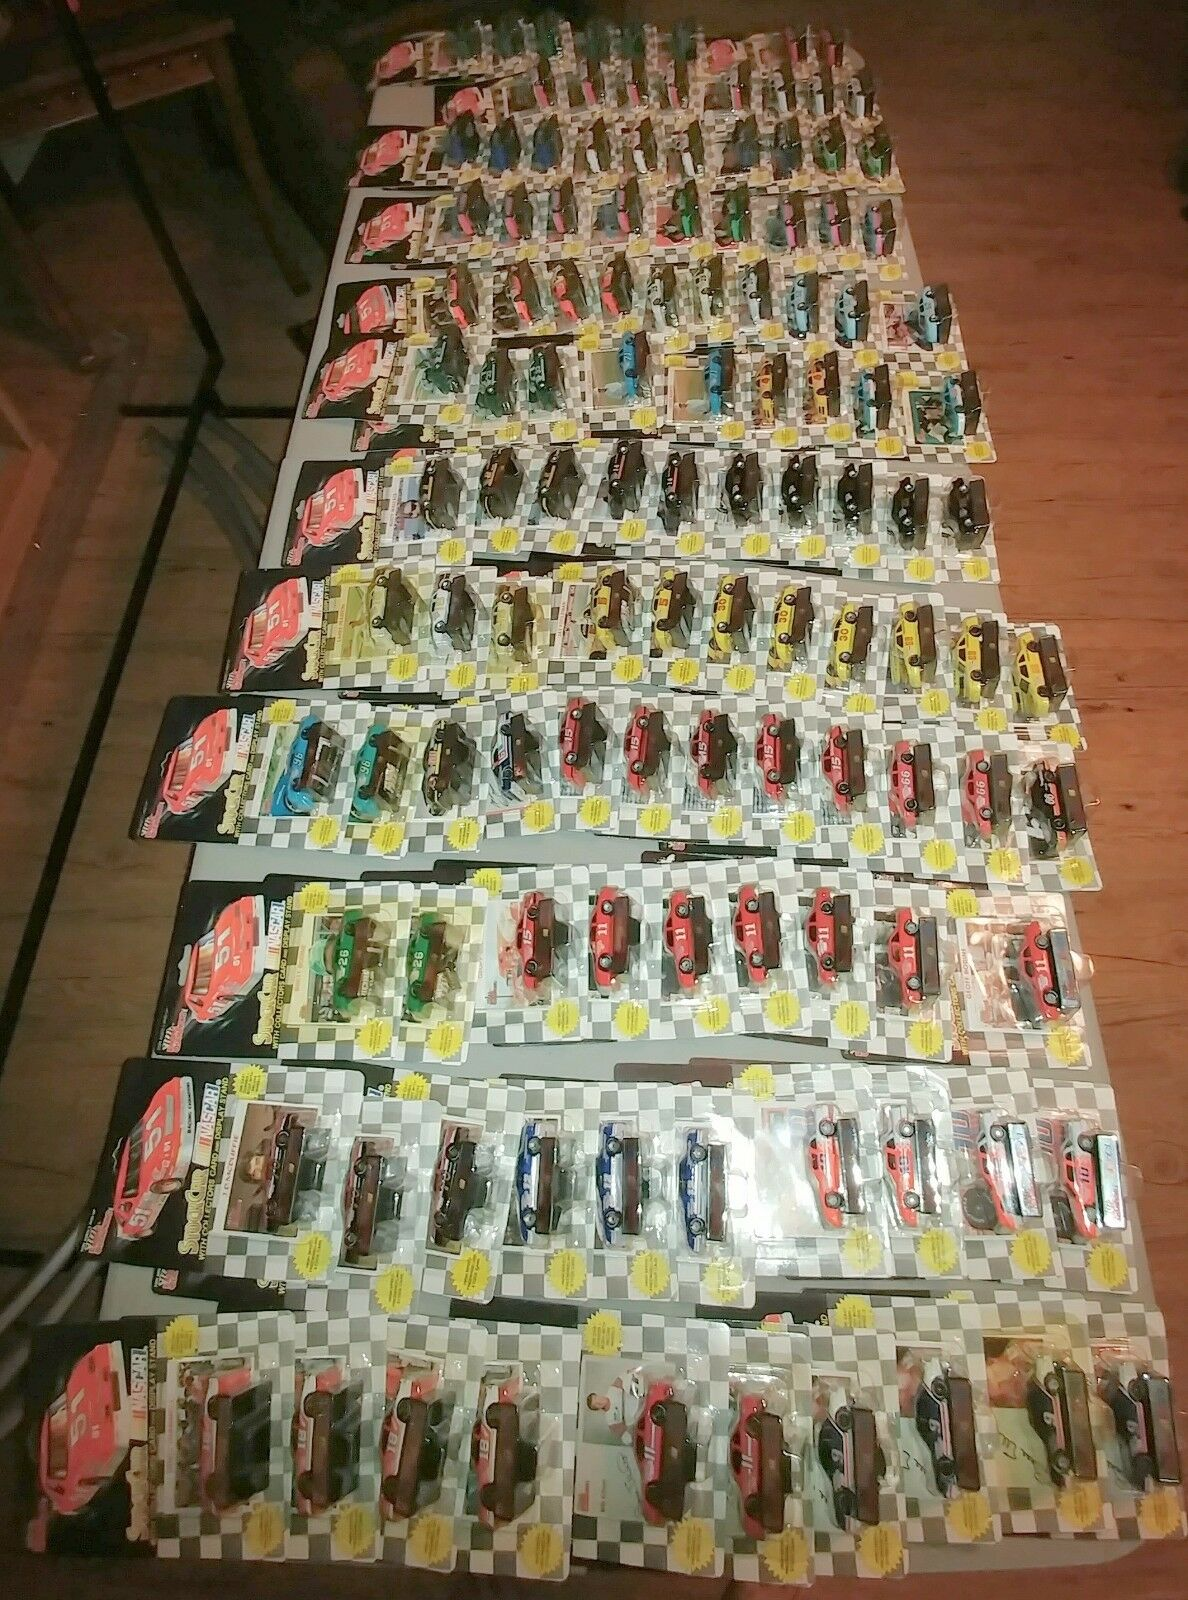 116 Racing Champion Nascar Diecast 1 64 scale cars with stand  card, mostly 1991